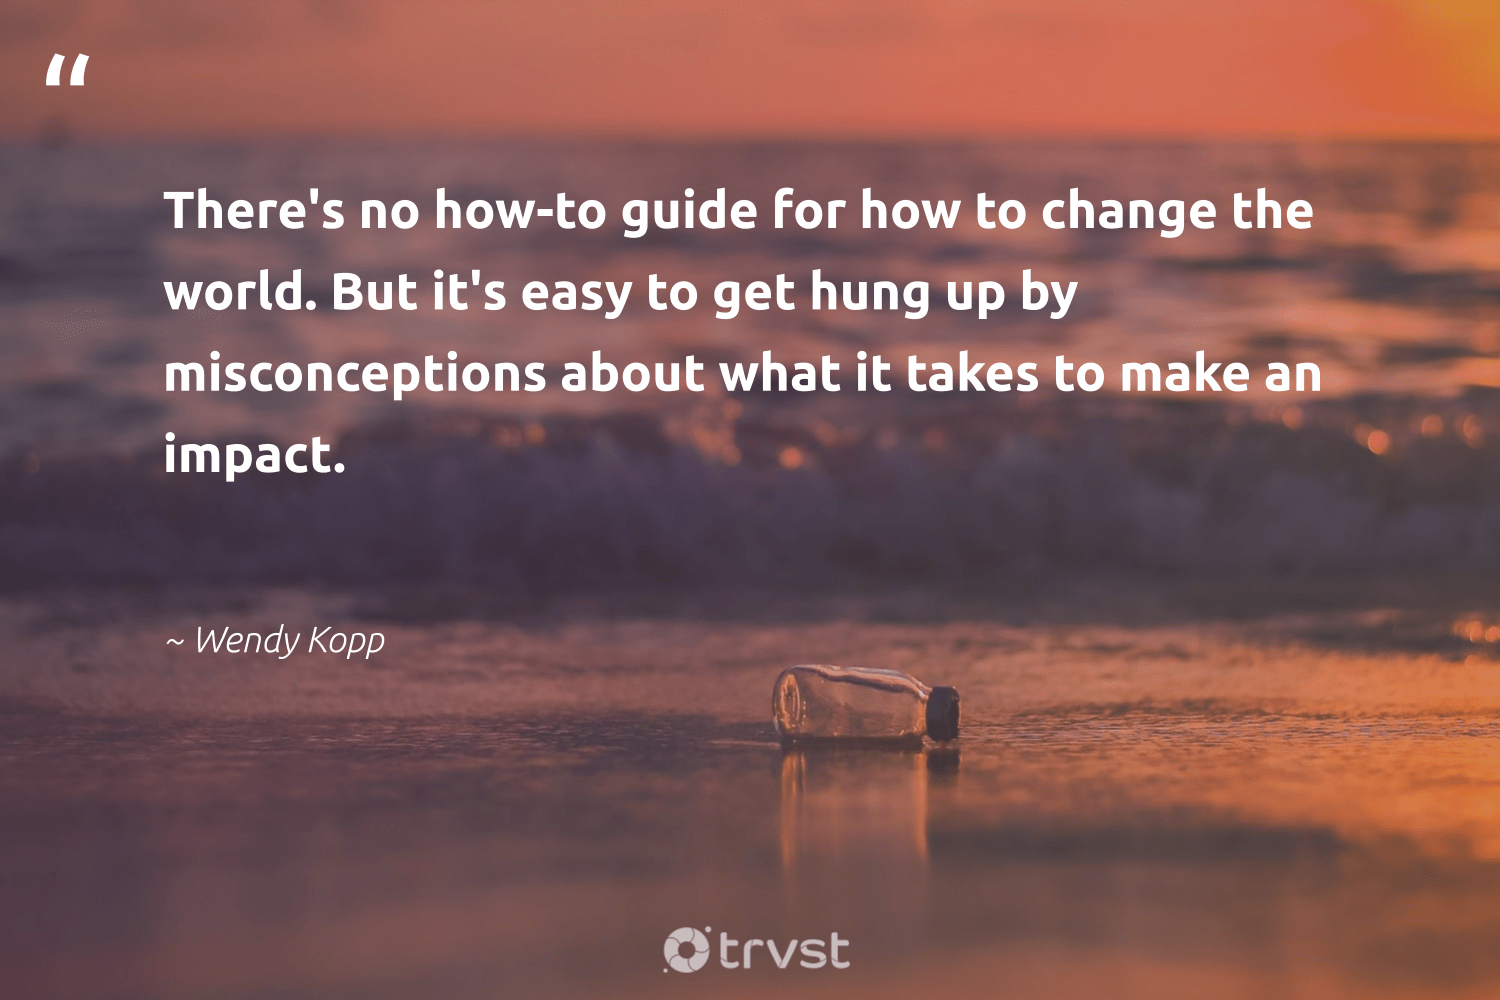 """There's no how-to guide for how to change the world. But it's easy to get hung up by misconceptions about what it takes to make an impact.""  - Wendy Kopp #trvst #quotes #impact #changetheworld #socialchange #dogood #weareallone #socialimpact #ethicalbusiness #beinspired #makeadifference #collectiveaction"